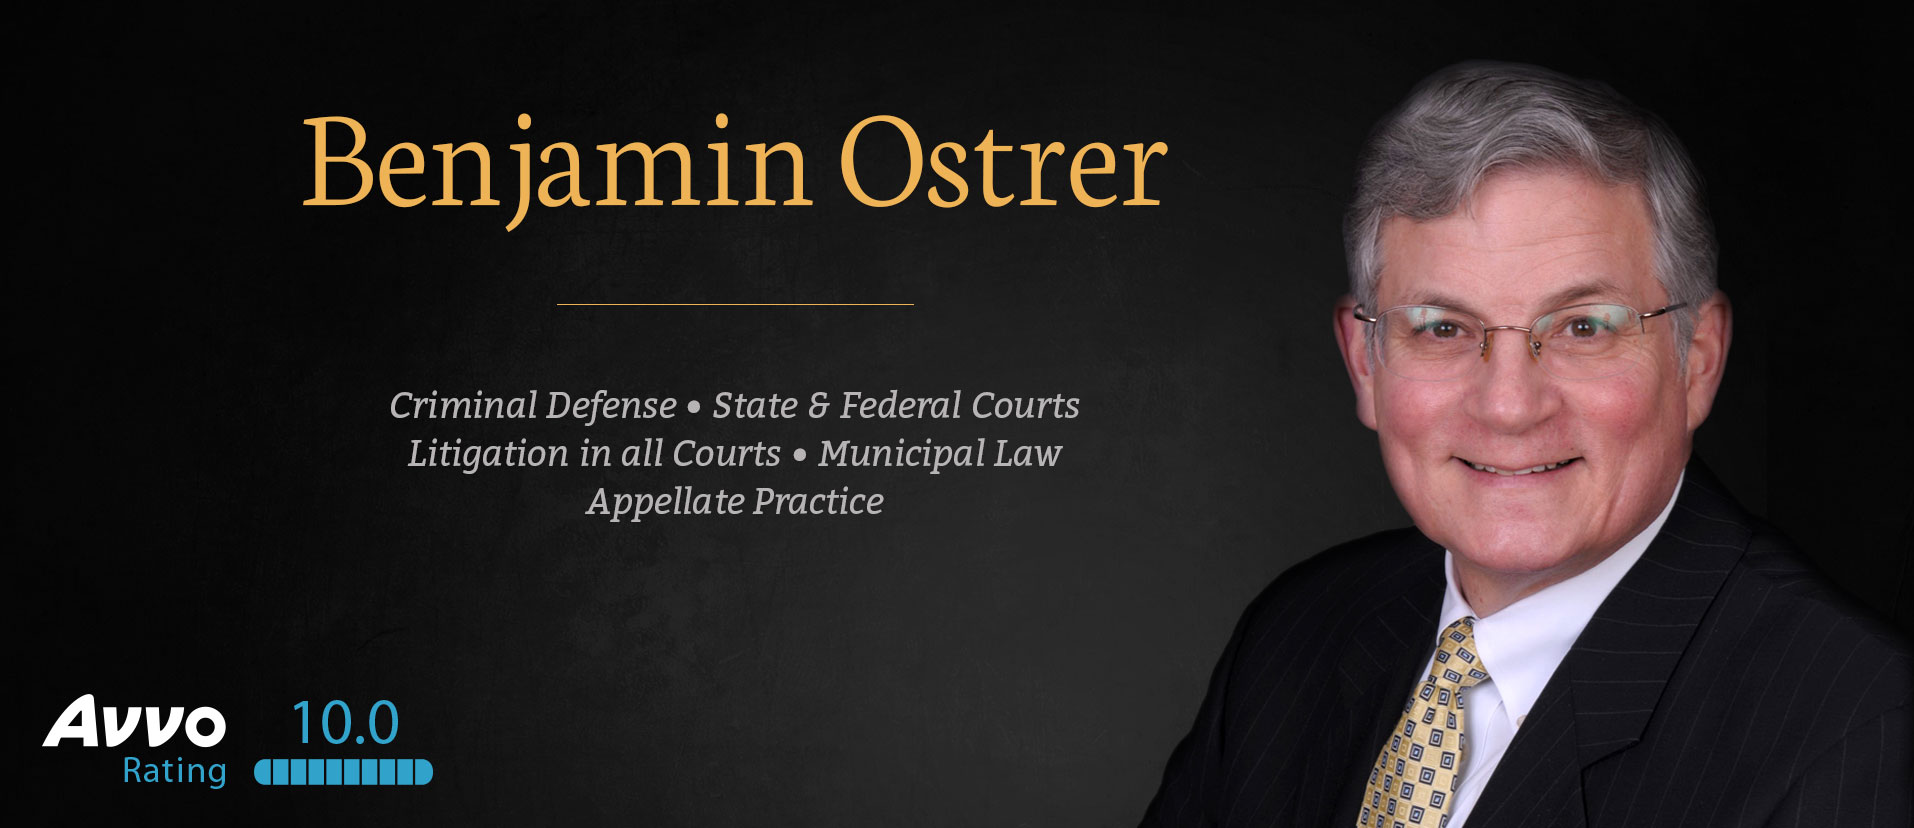 Osterer_Web_Header_Only-Benjamin